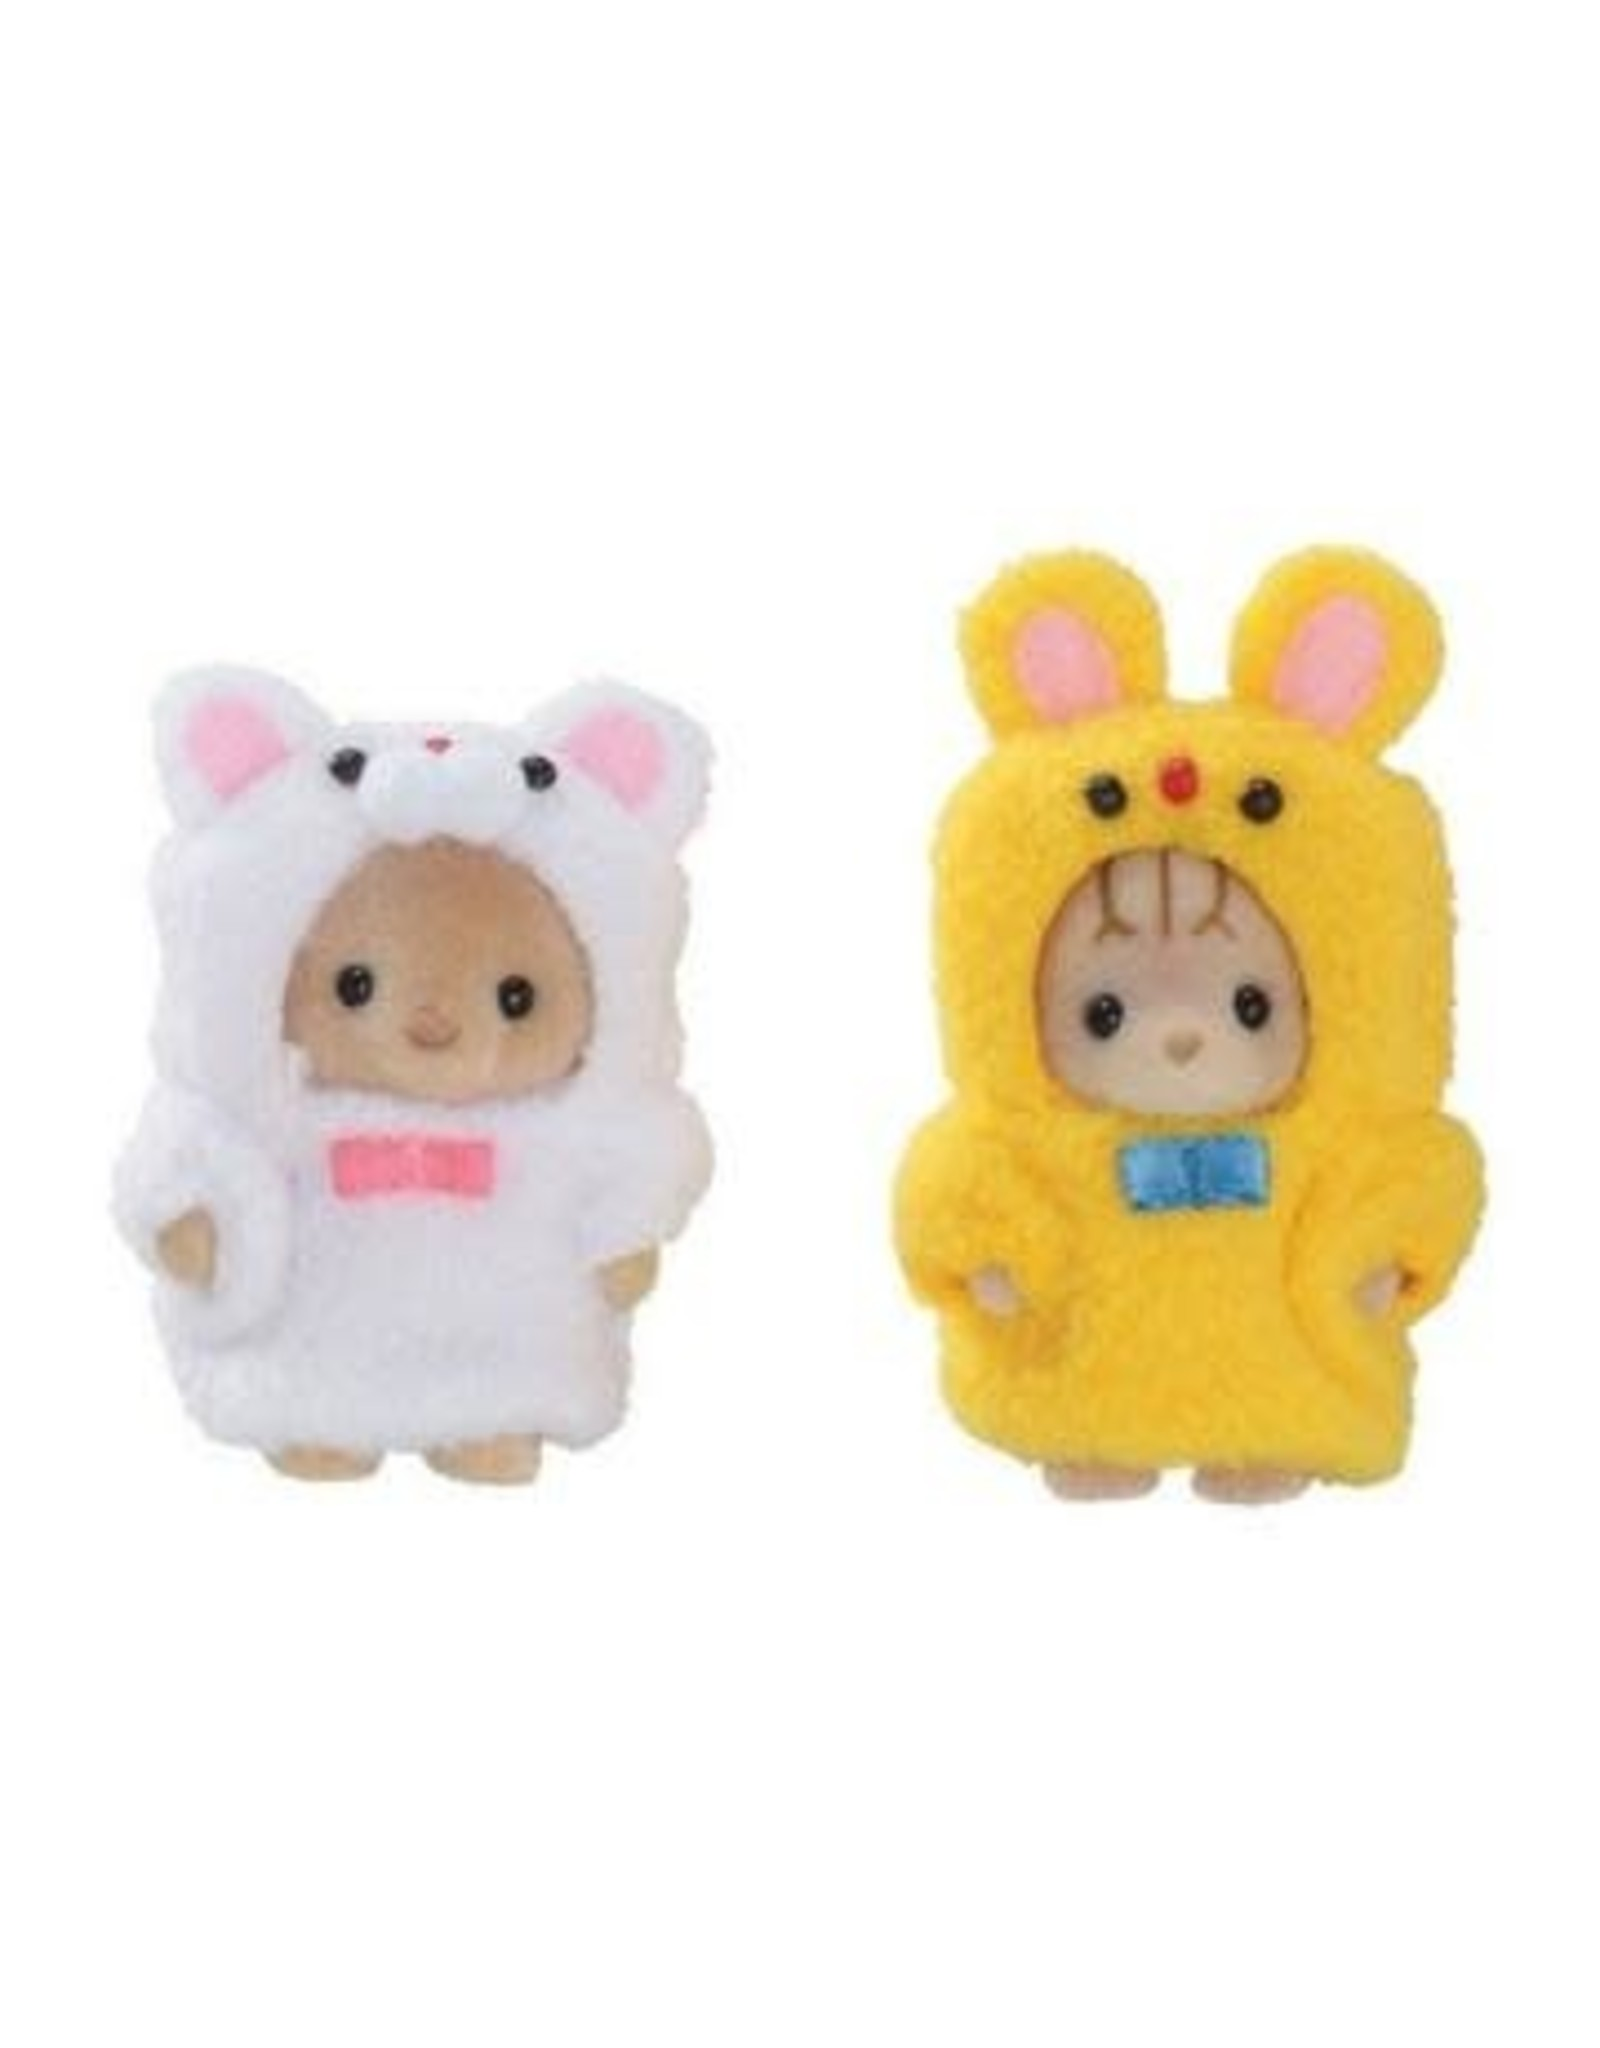 Calico Critters Calico Critters Costume Cuties Kitty & Cub